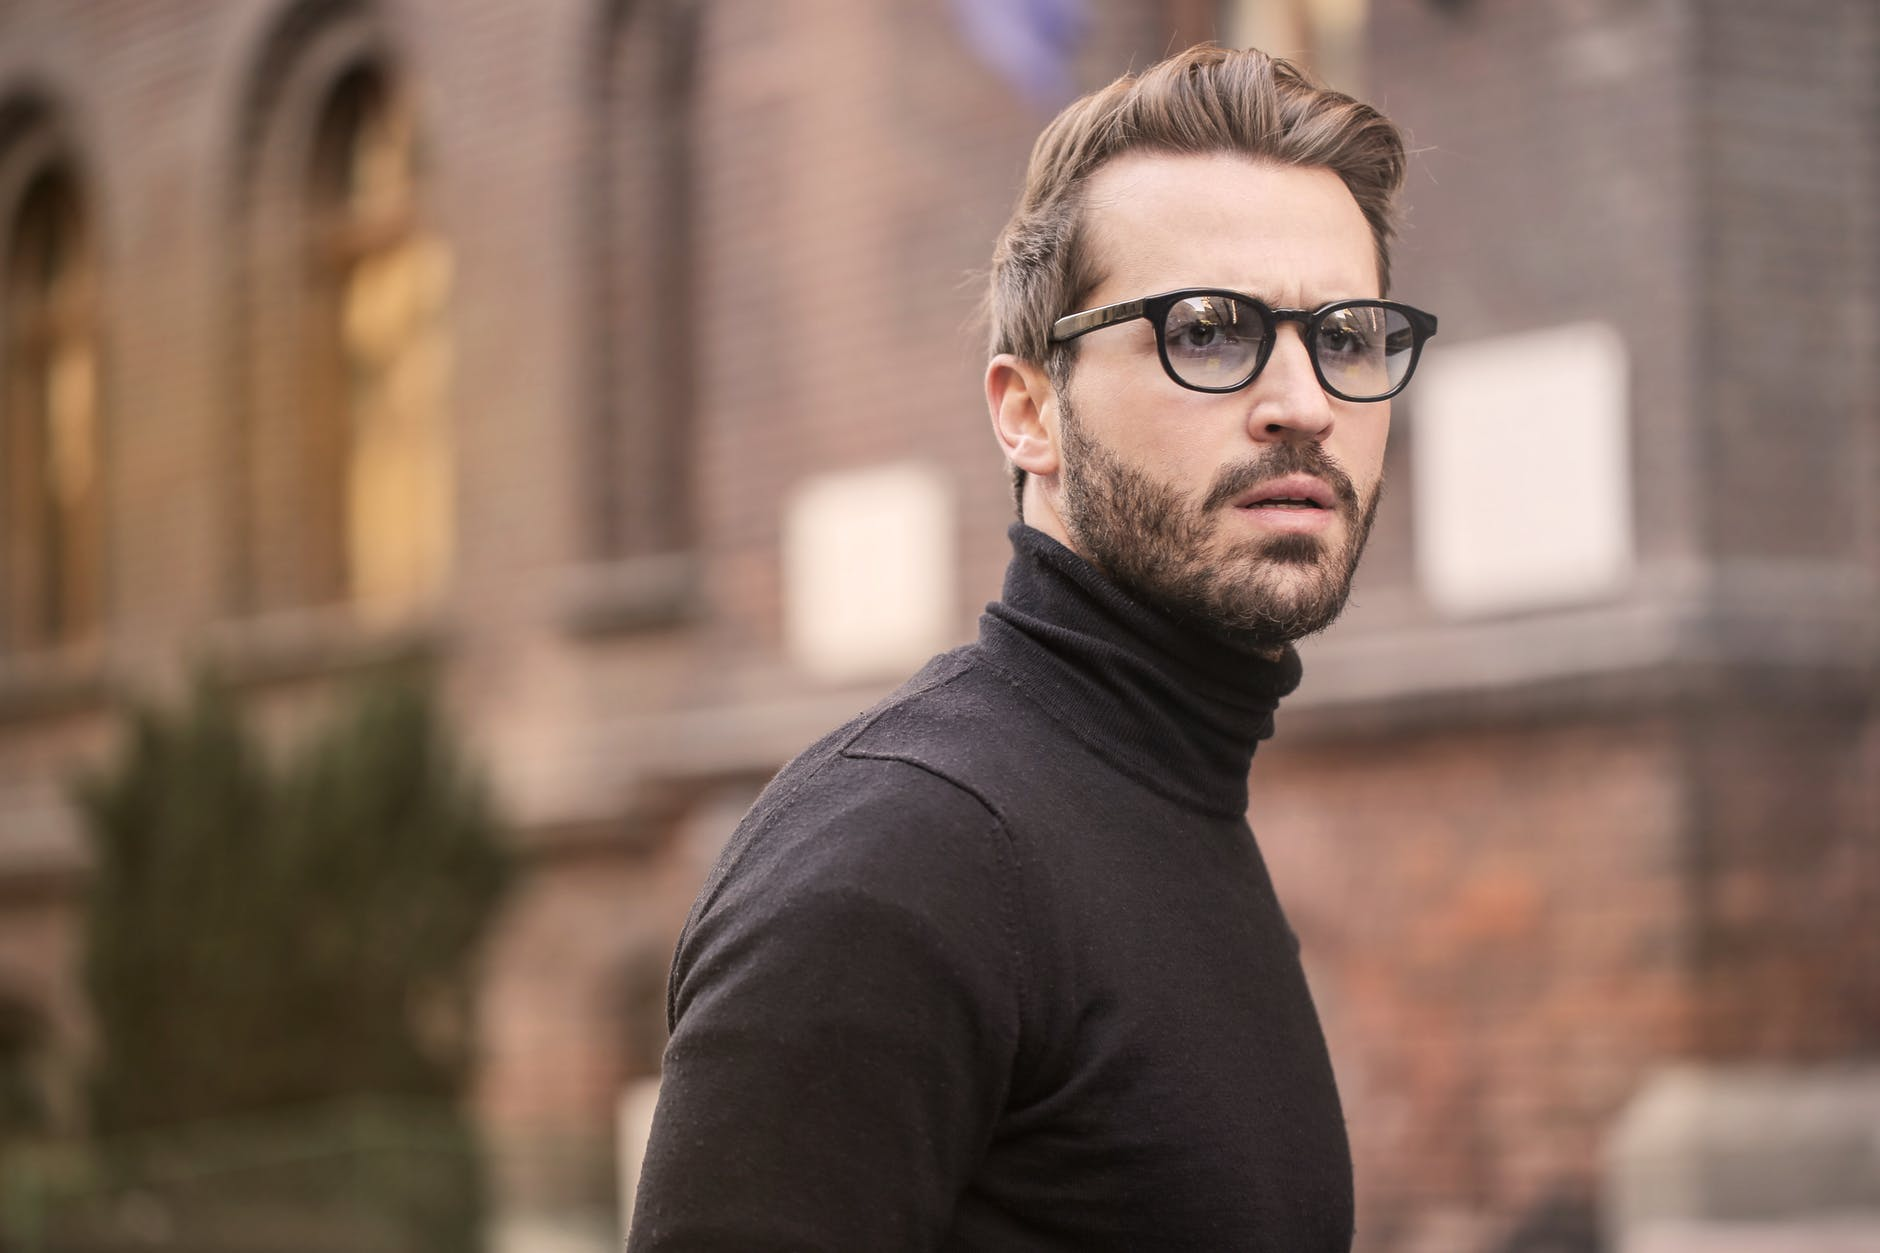 Haircuts 2019 Ideas For Modern Men Styles For Men